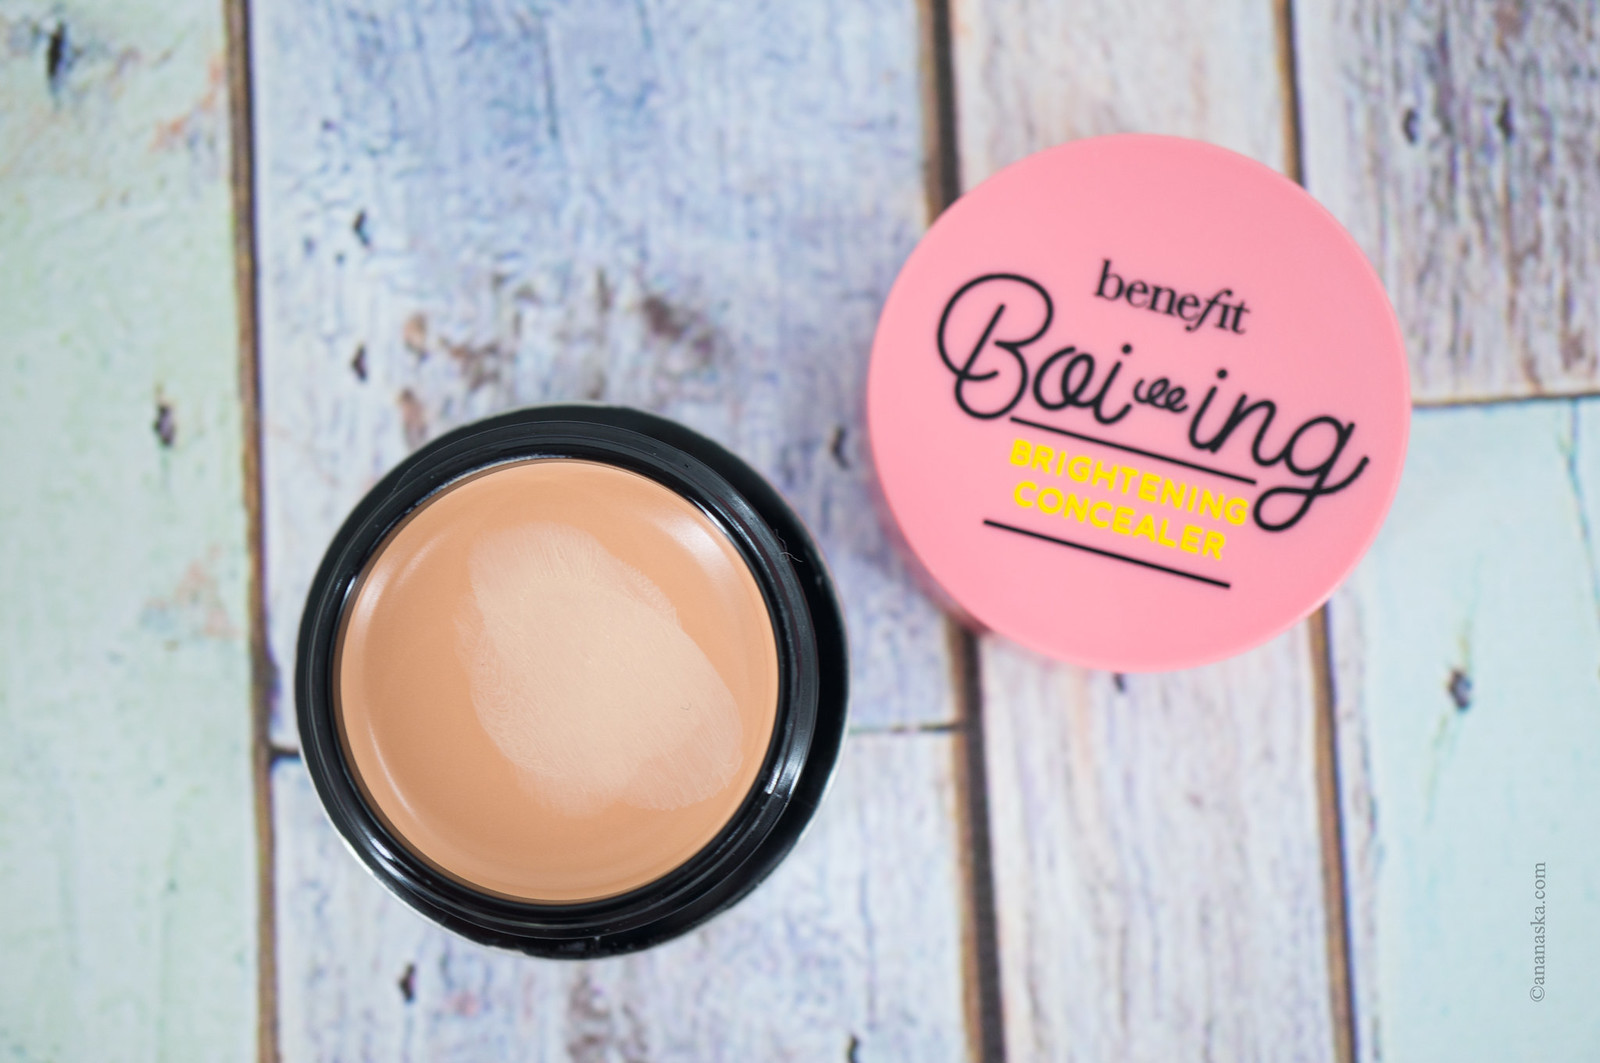 Benefit Boi-ing Brightening Concealer 01 Light